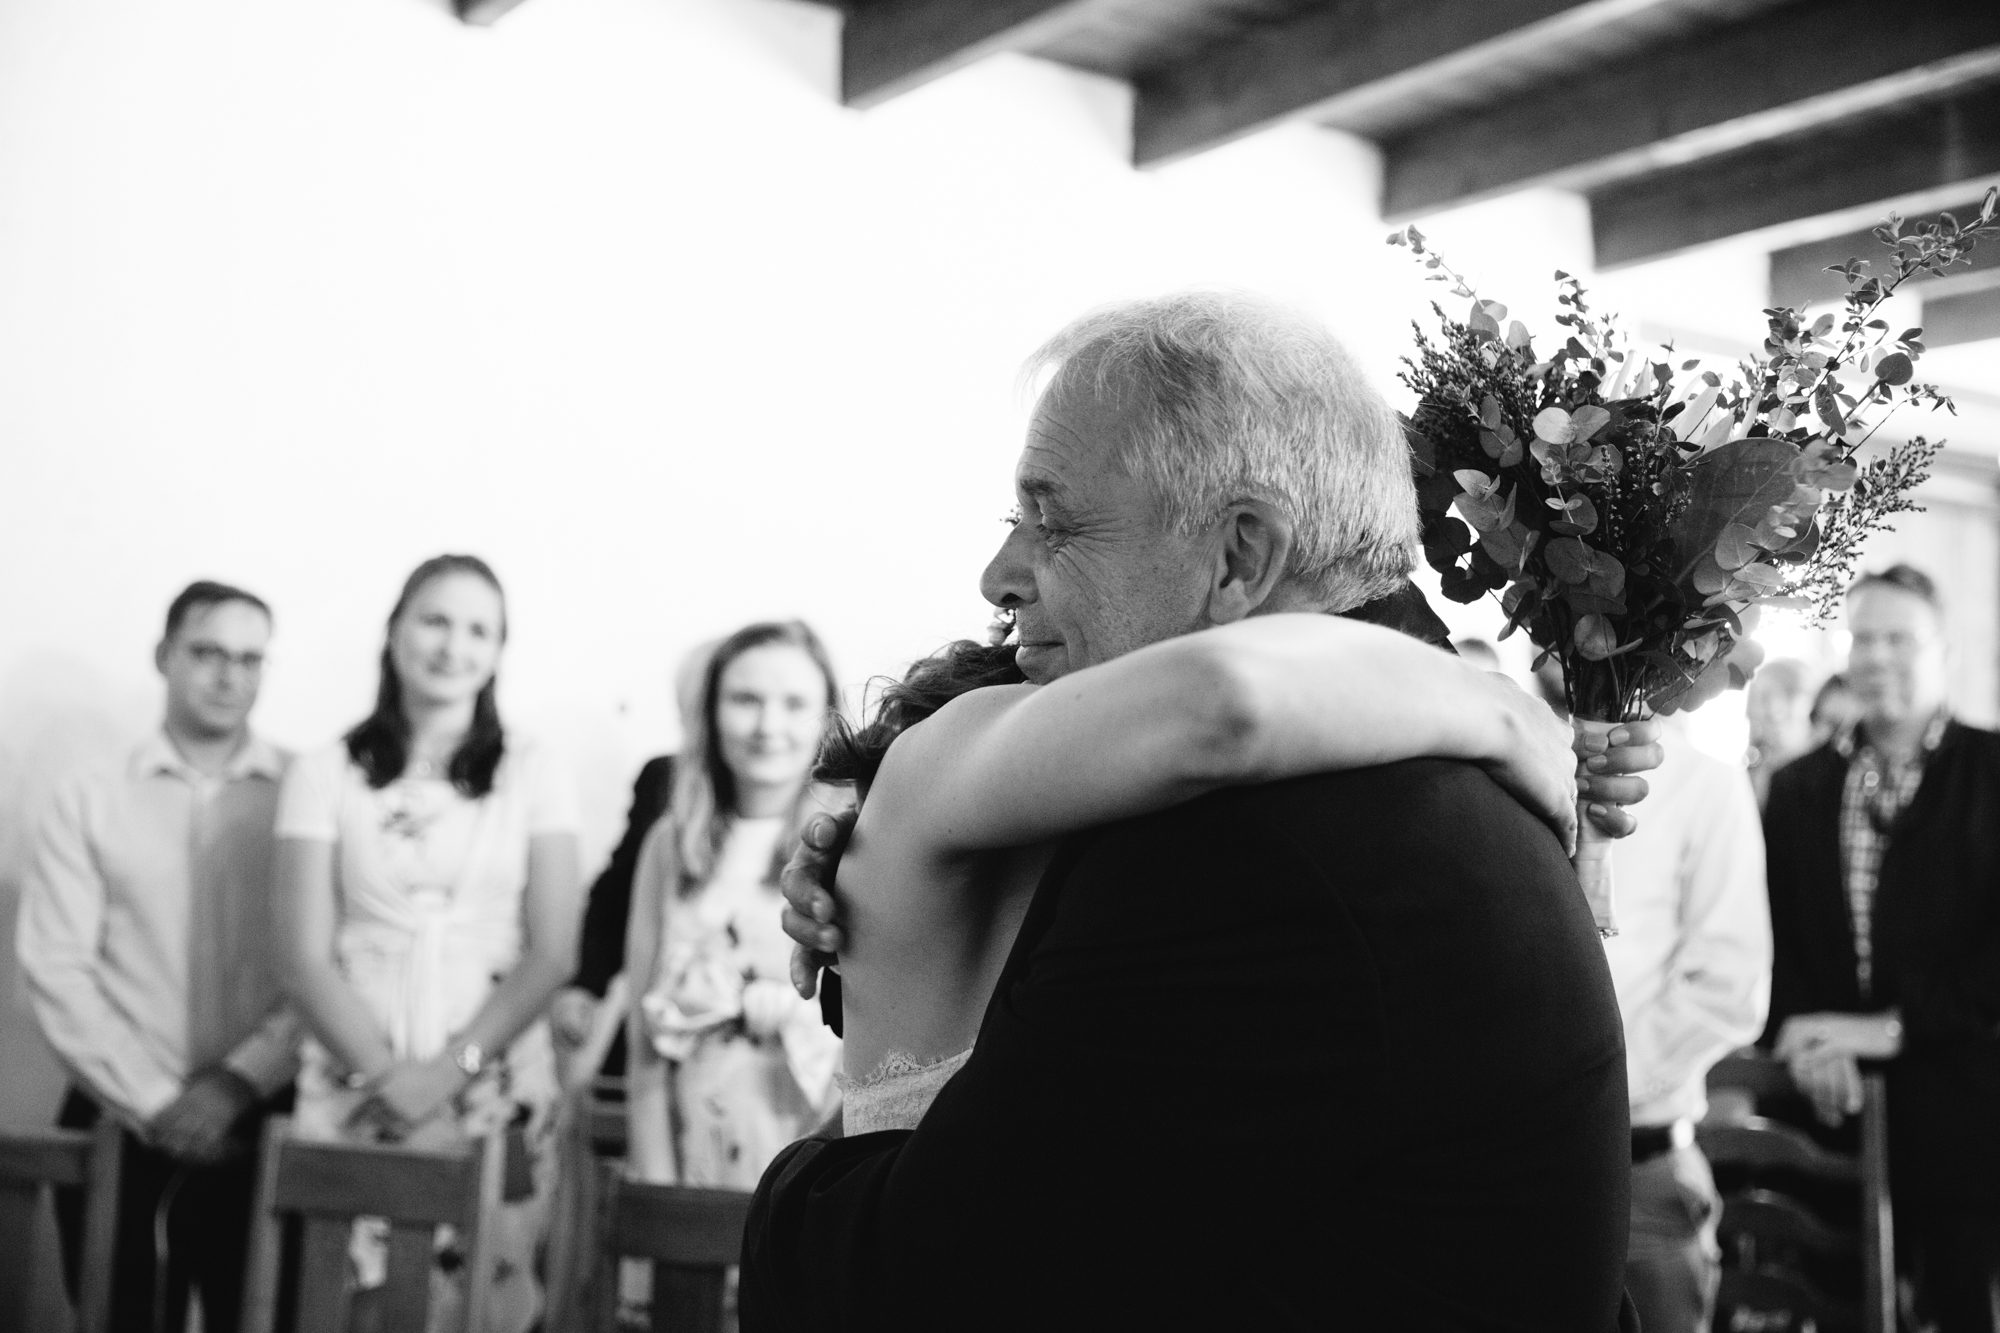 KOA_PHOTOGRAPHY-JAMES&SHARON -0602-2.JPG